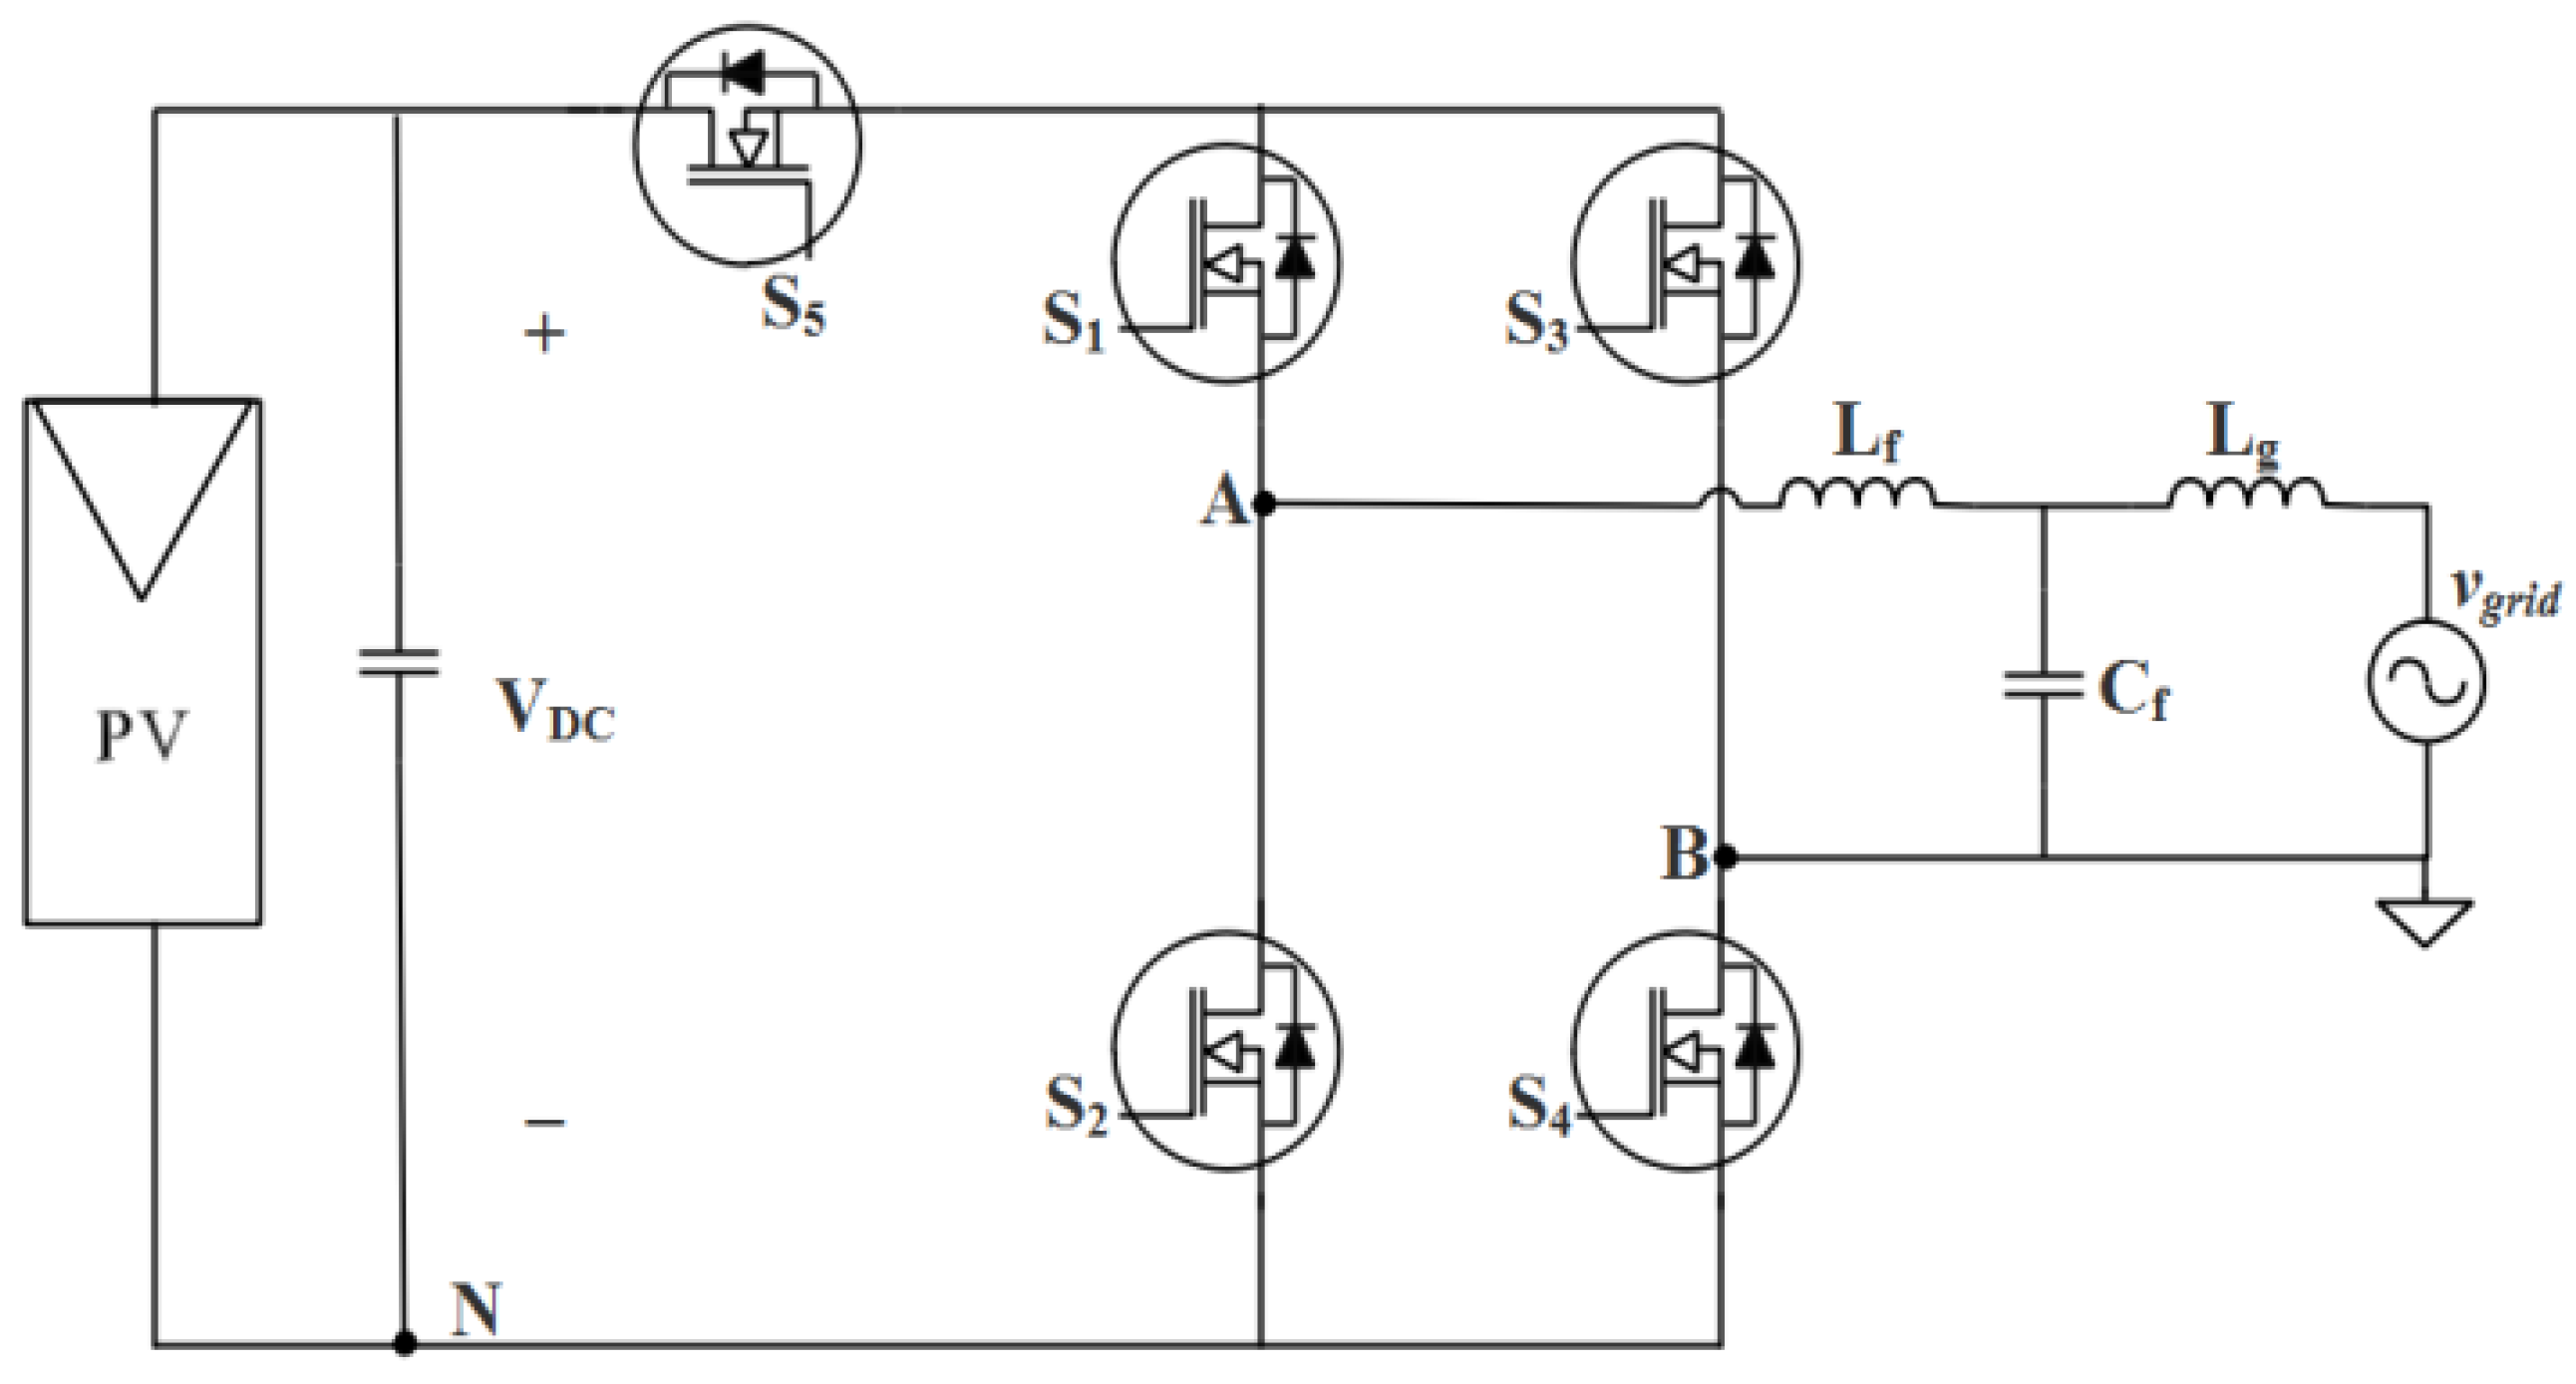 Electronics | Free Full-Text | Comparative ysis of Si- and GaN ... on murphy temperature switch, murphy system wiring, murphy switch 518aph, murphy switch cover, lawn mower ignition switch diagram, relay switch diagram, murphy shut down switch switch, murphy switch oil pressure sensor, murphy tattletale switch, murphy powerview wiring diagram, switch connection diagram, murphy switch 12 volt, spdt limit switch diagram, murphy solenoid wiring, murphy vibration switch, murphy timer switch 24t, murphy panel wiring,